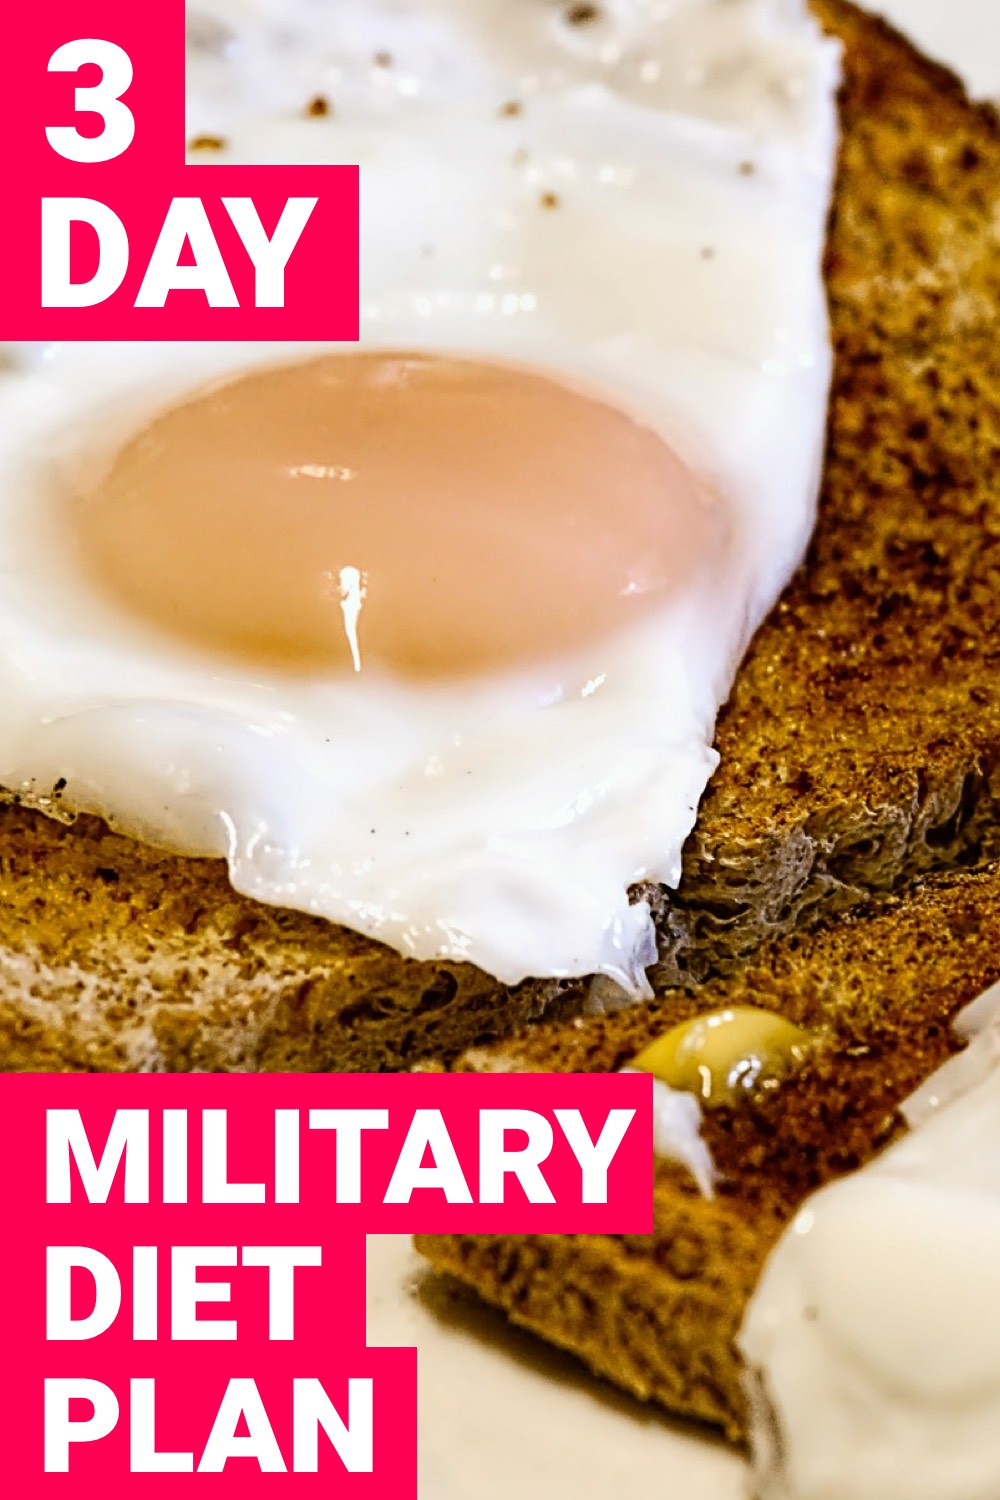 If you want to lose weight fast, try the military diet. It won't be easy but it's something that can get you to the weight you want in a hurry.